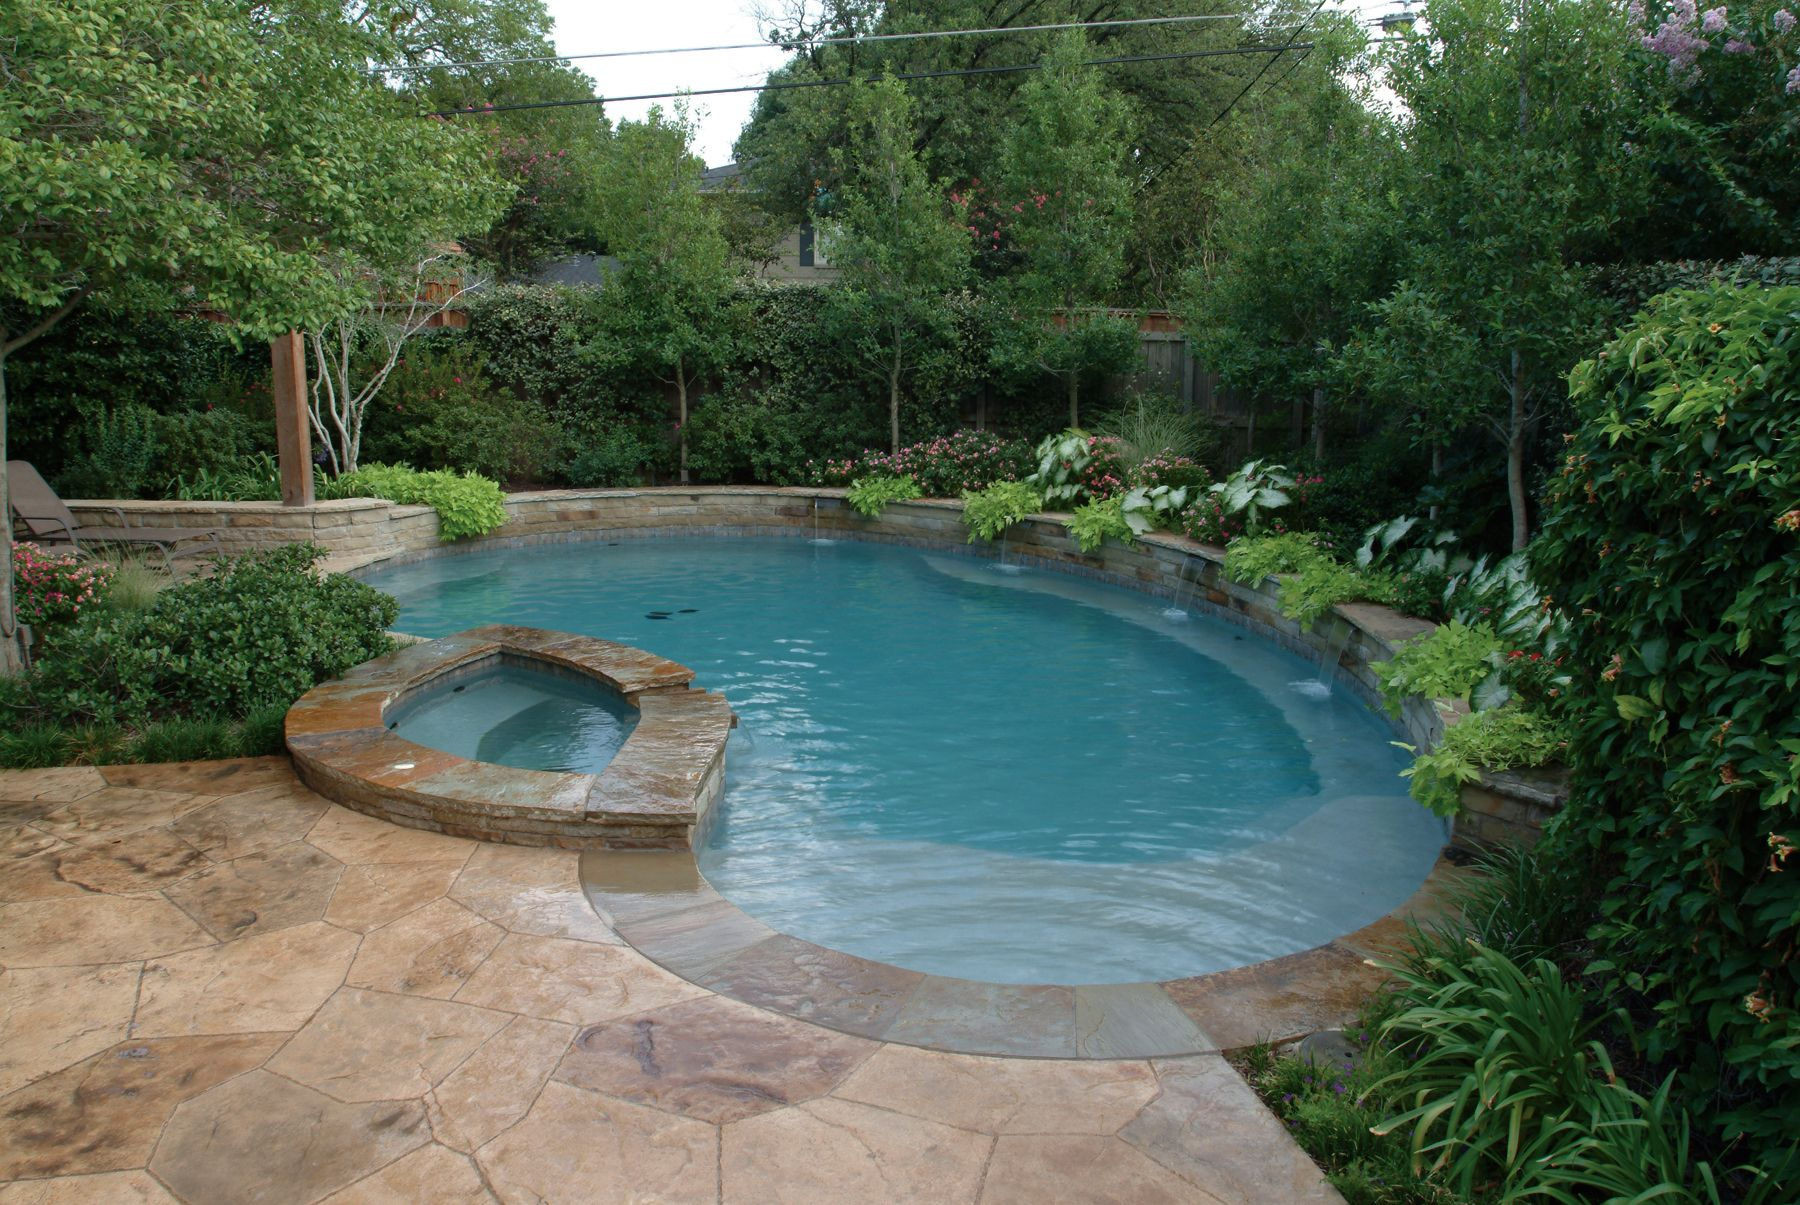 17 best ideas about small inground pool on pinterest small pool ideas small pools and backyard - Inground Pool Designs Ideas